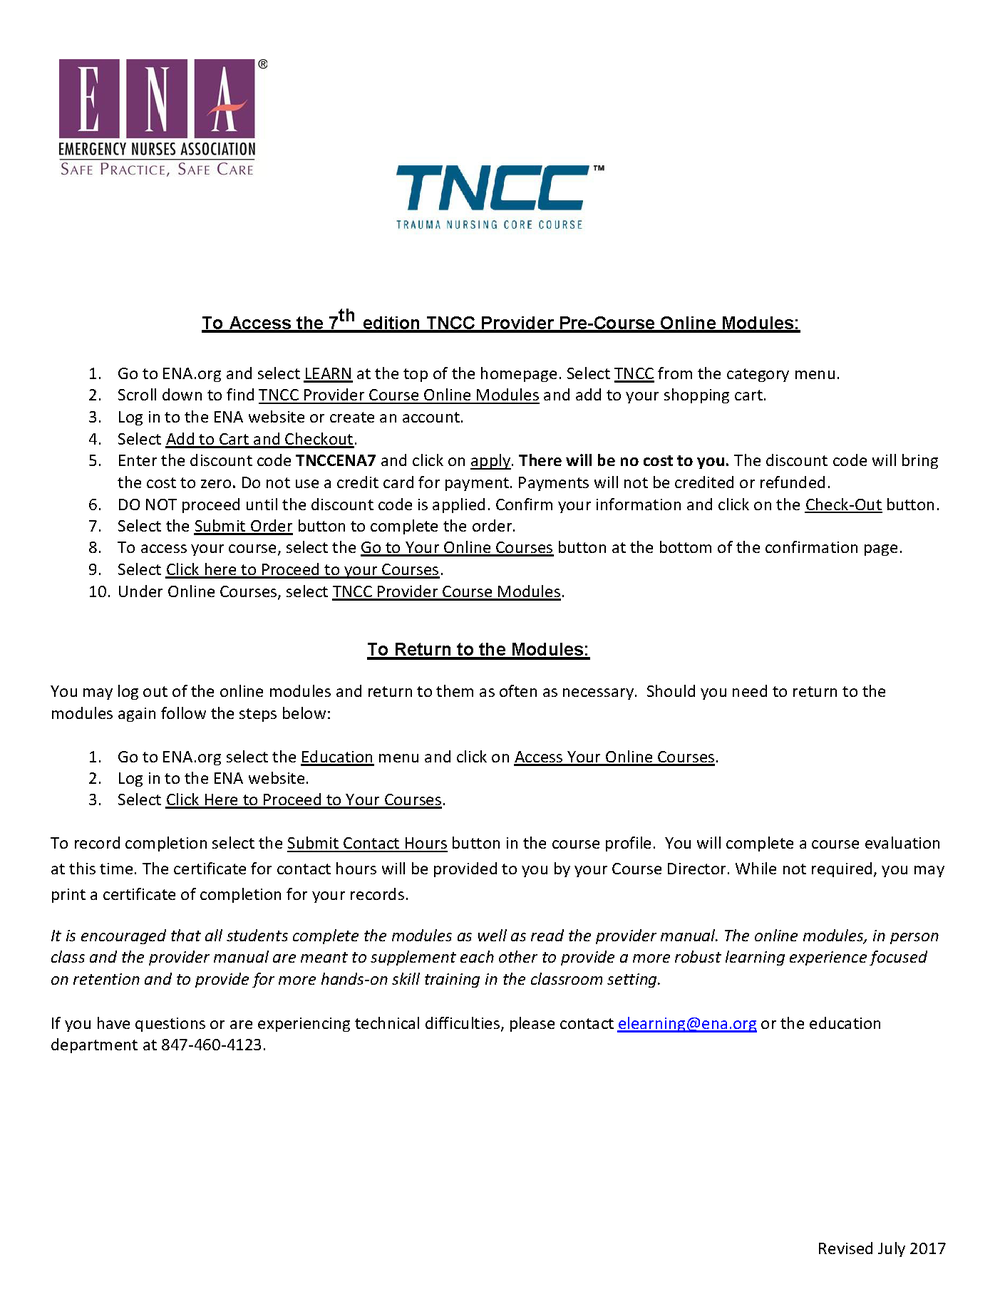 TNCC Online Module Access Instructions.png